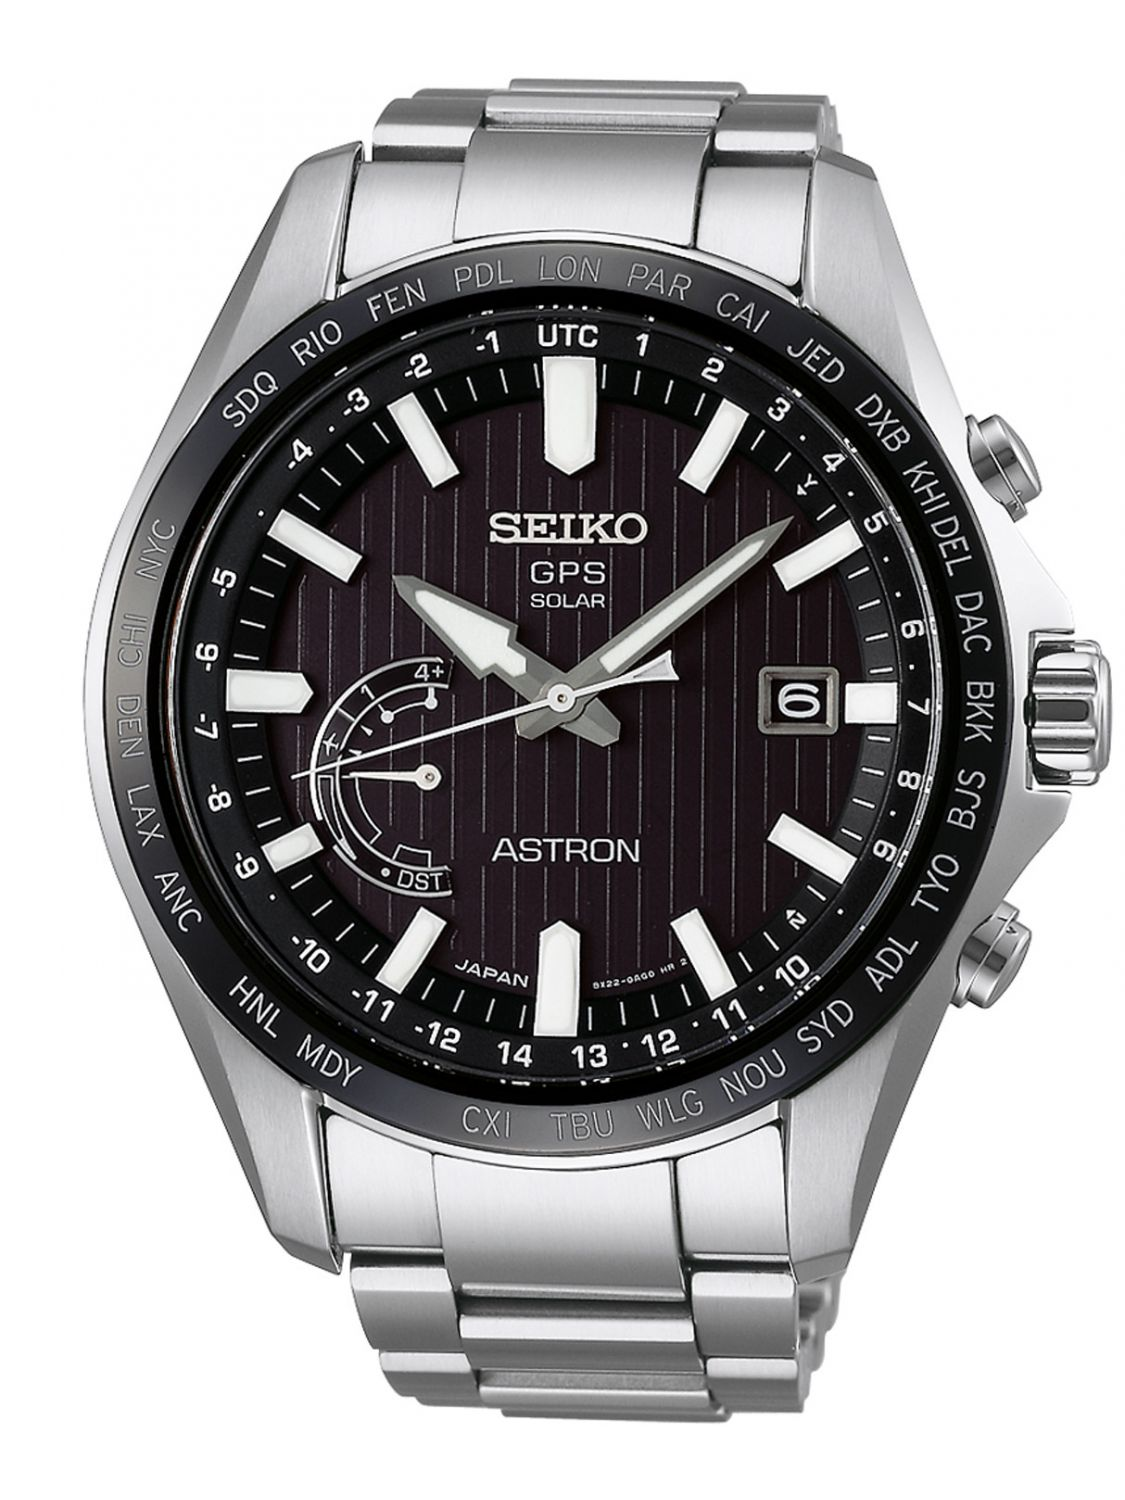 Seiko Astron Seiko Sse161j1 Astron Gps Solar World Time Mens Watch